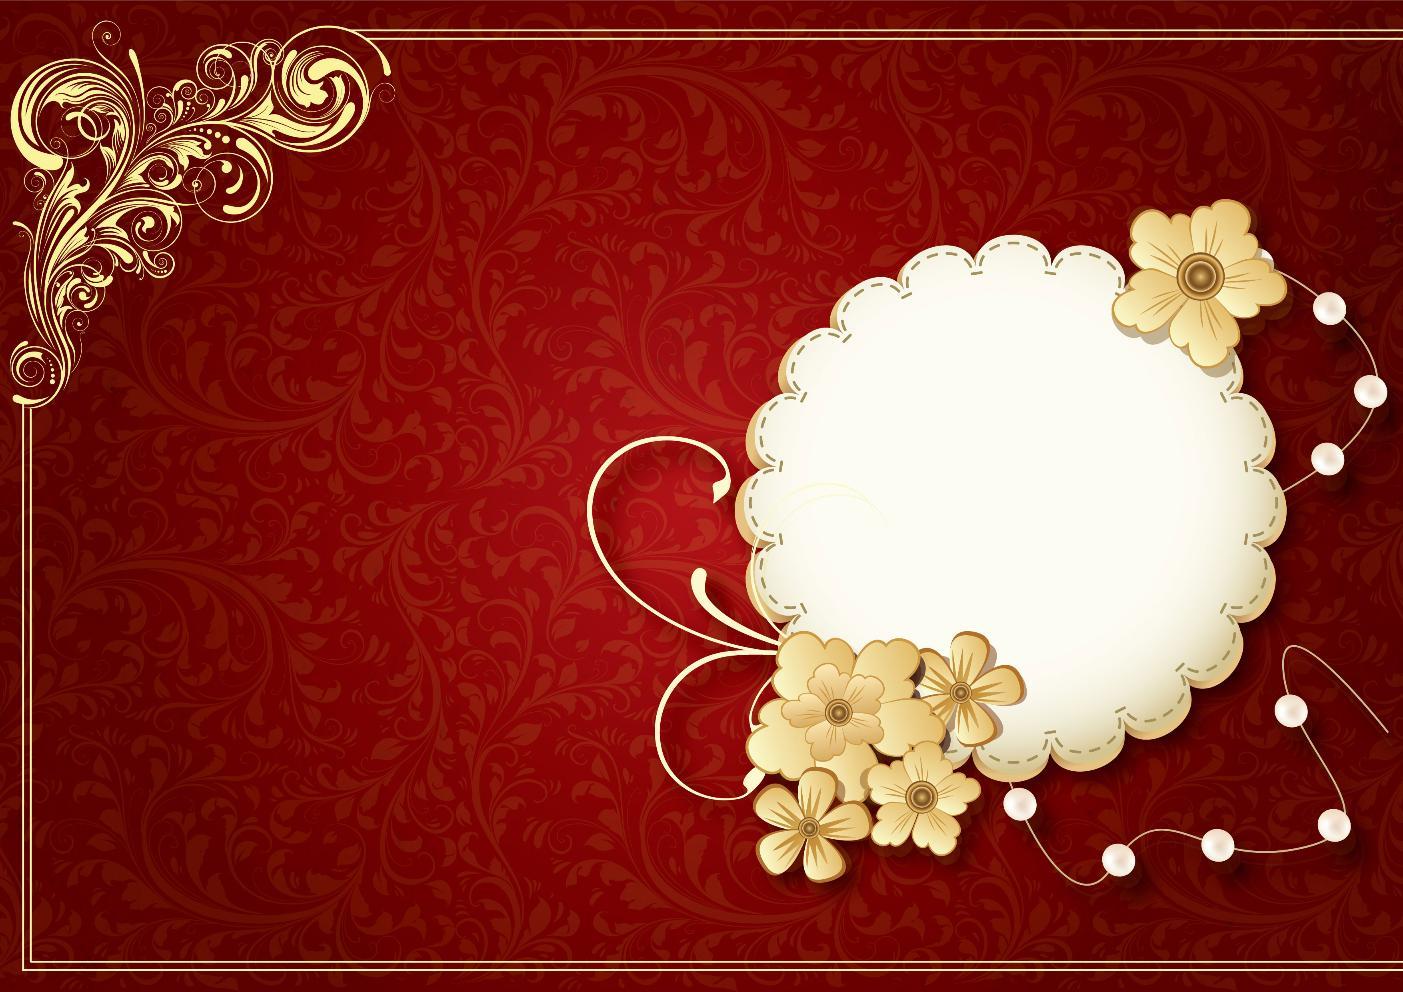 Image Result For Traditional Wedding Invitation Cards Designs